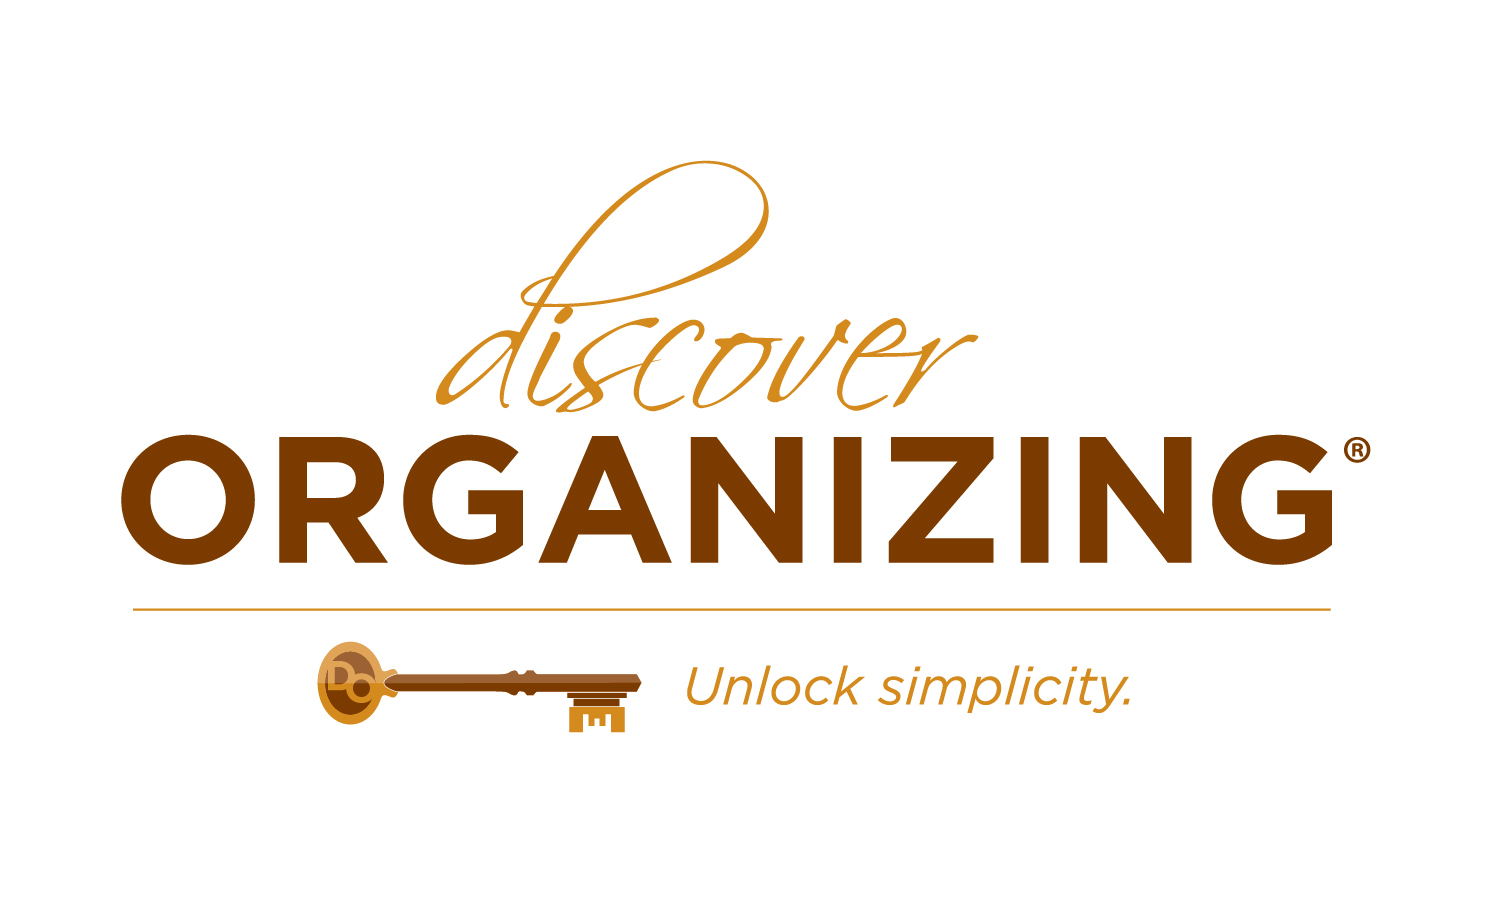 Discover Organizing